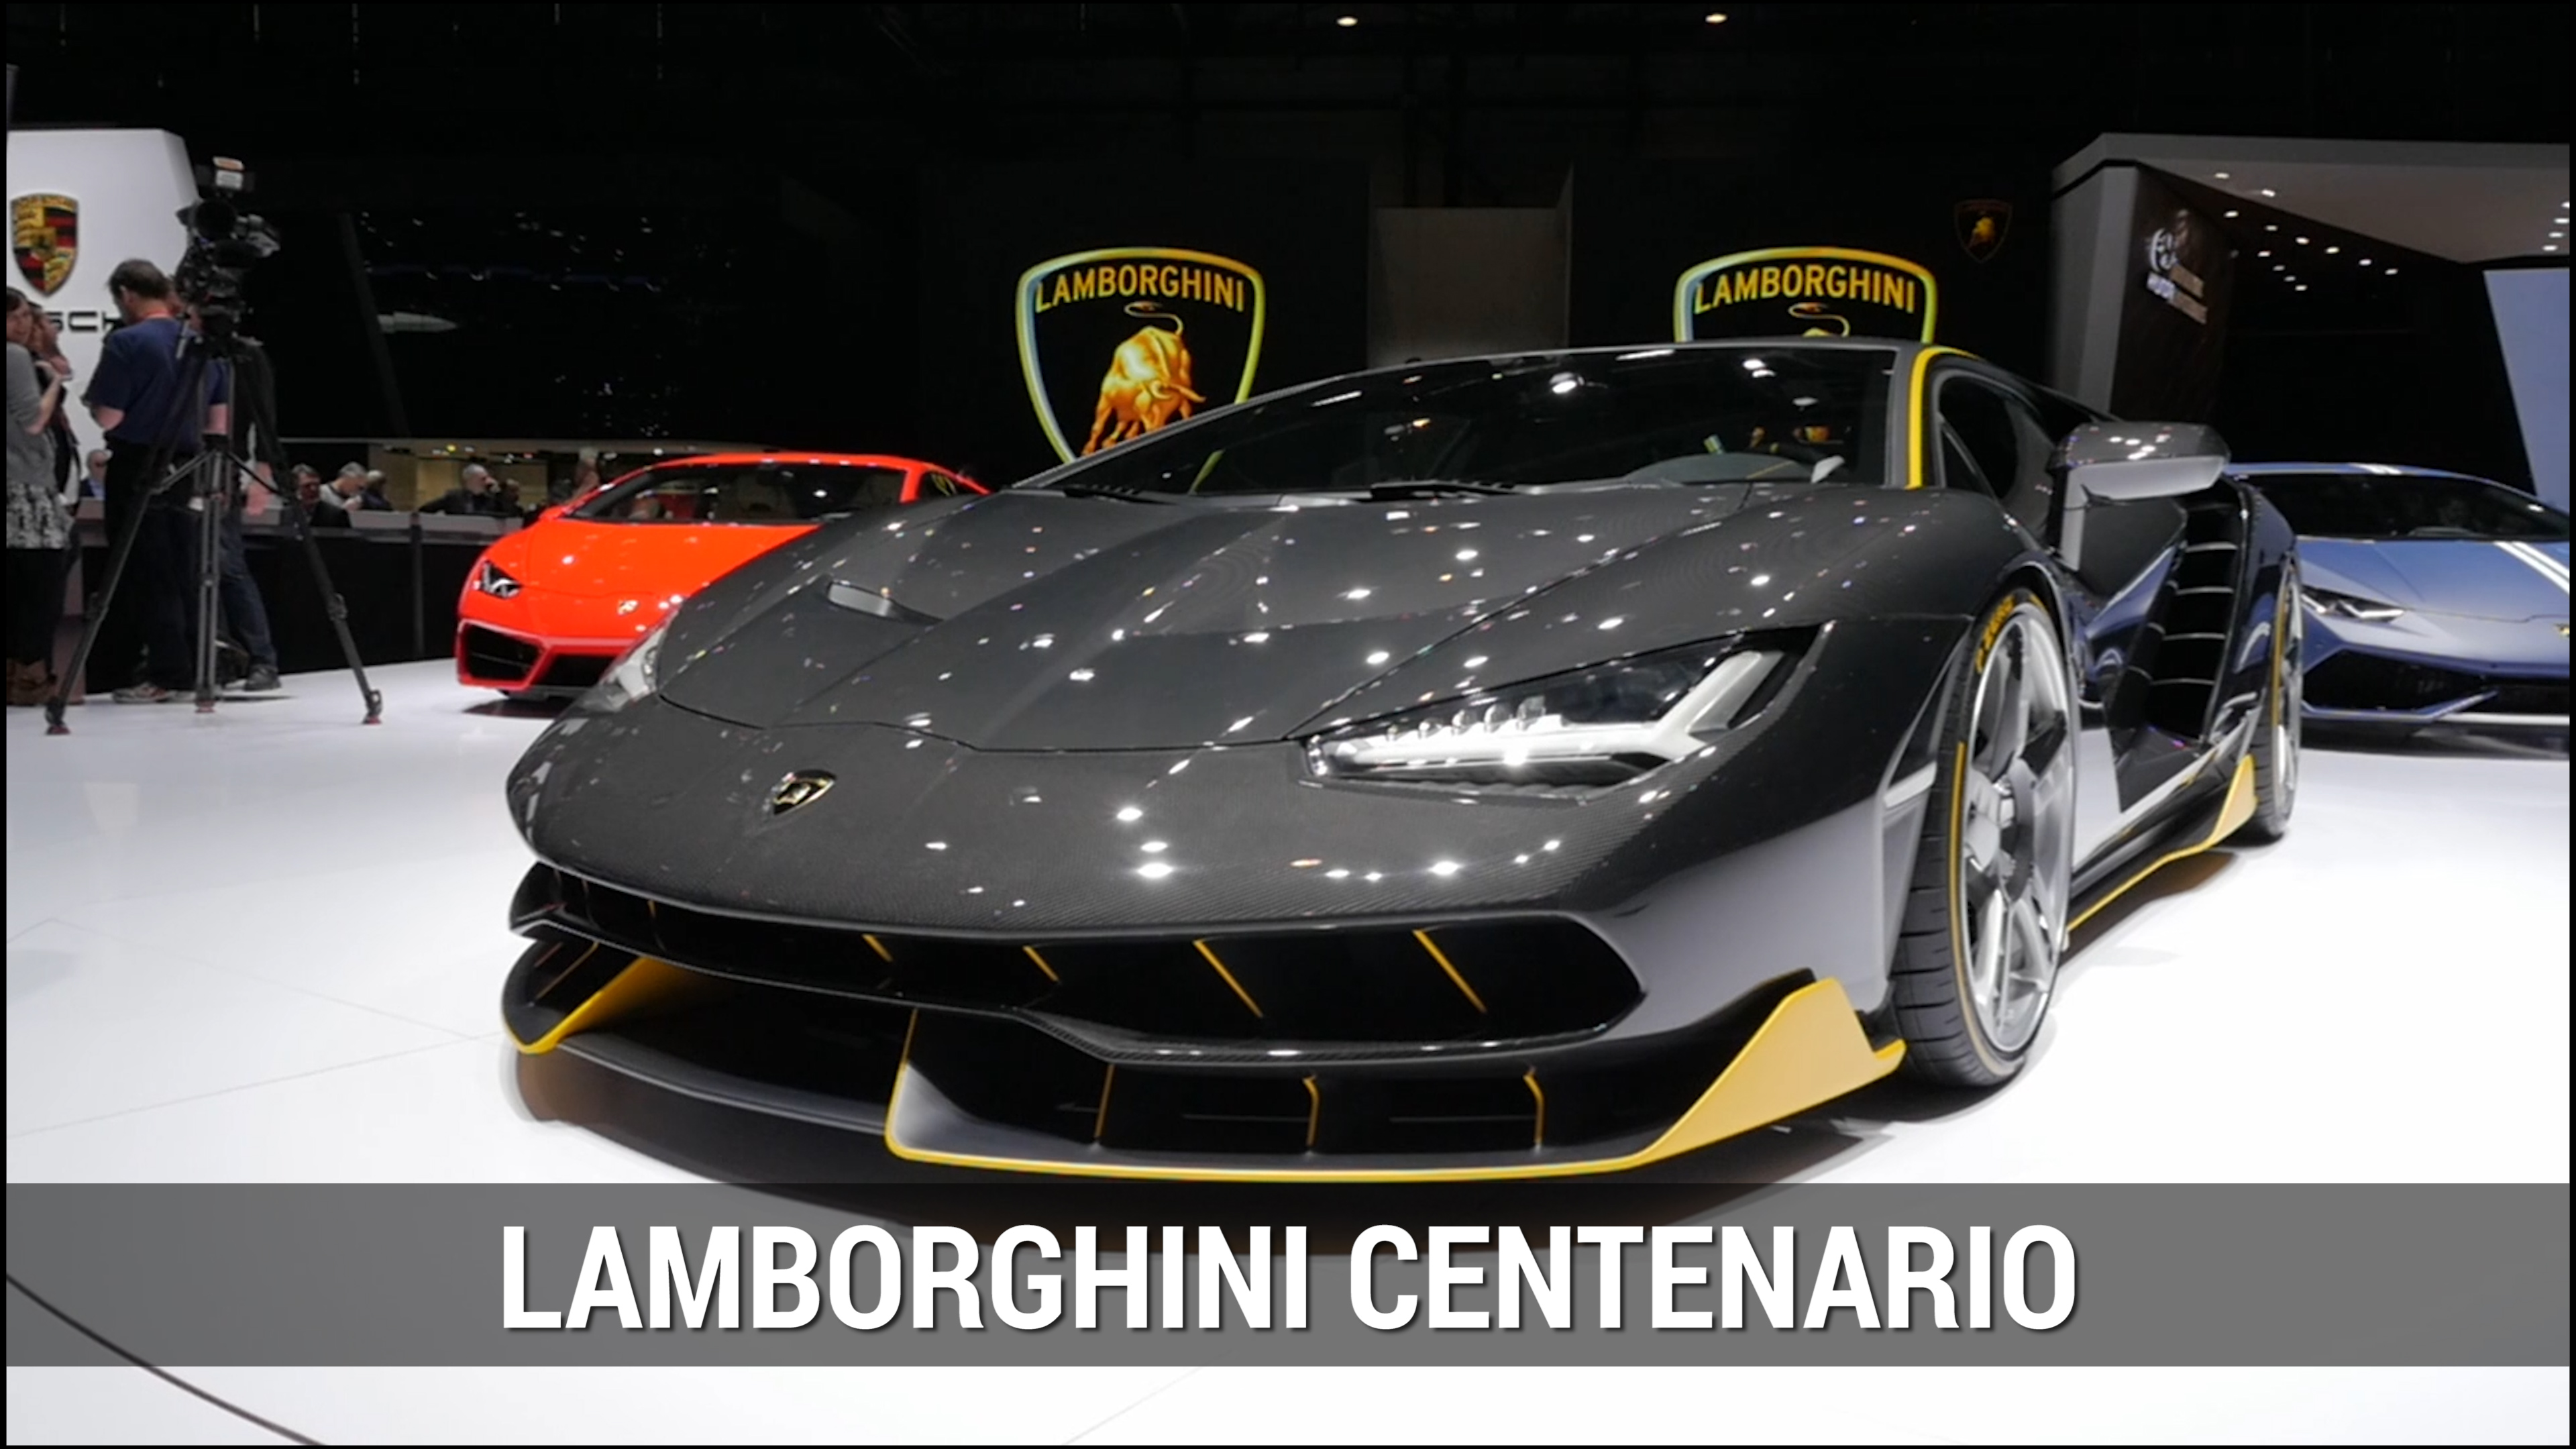 Lamborghini S Next Limited Edition Experimental Supercar Coming